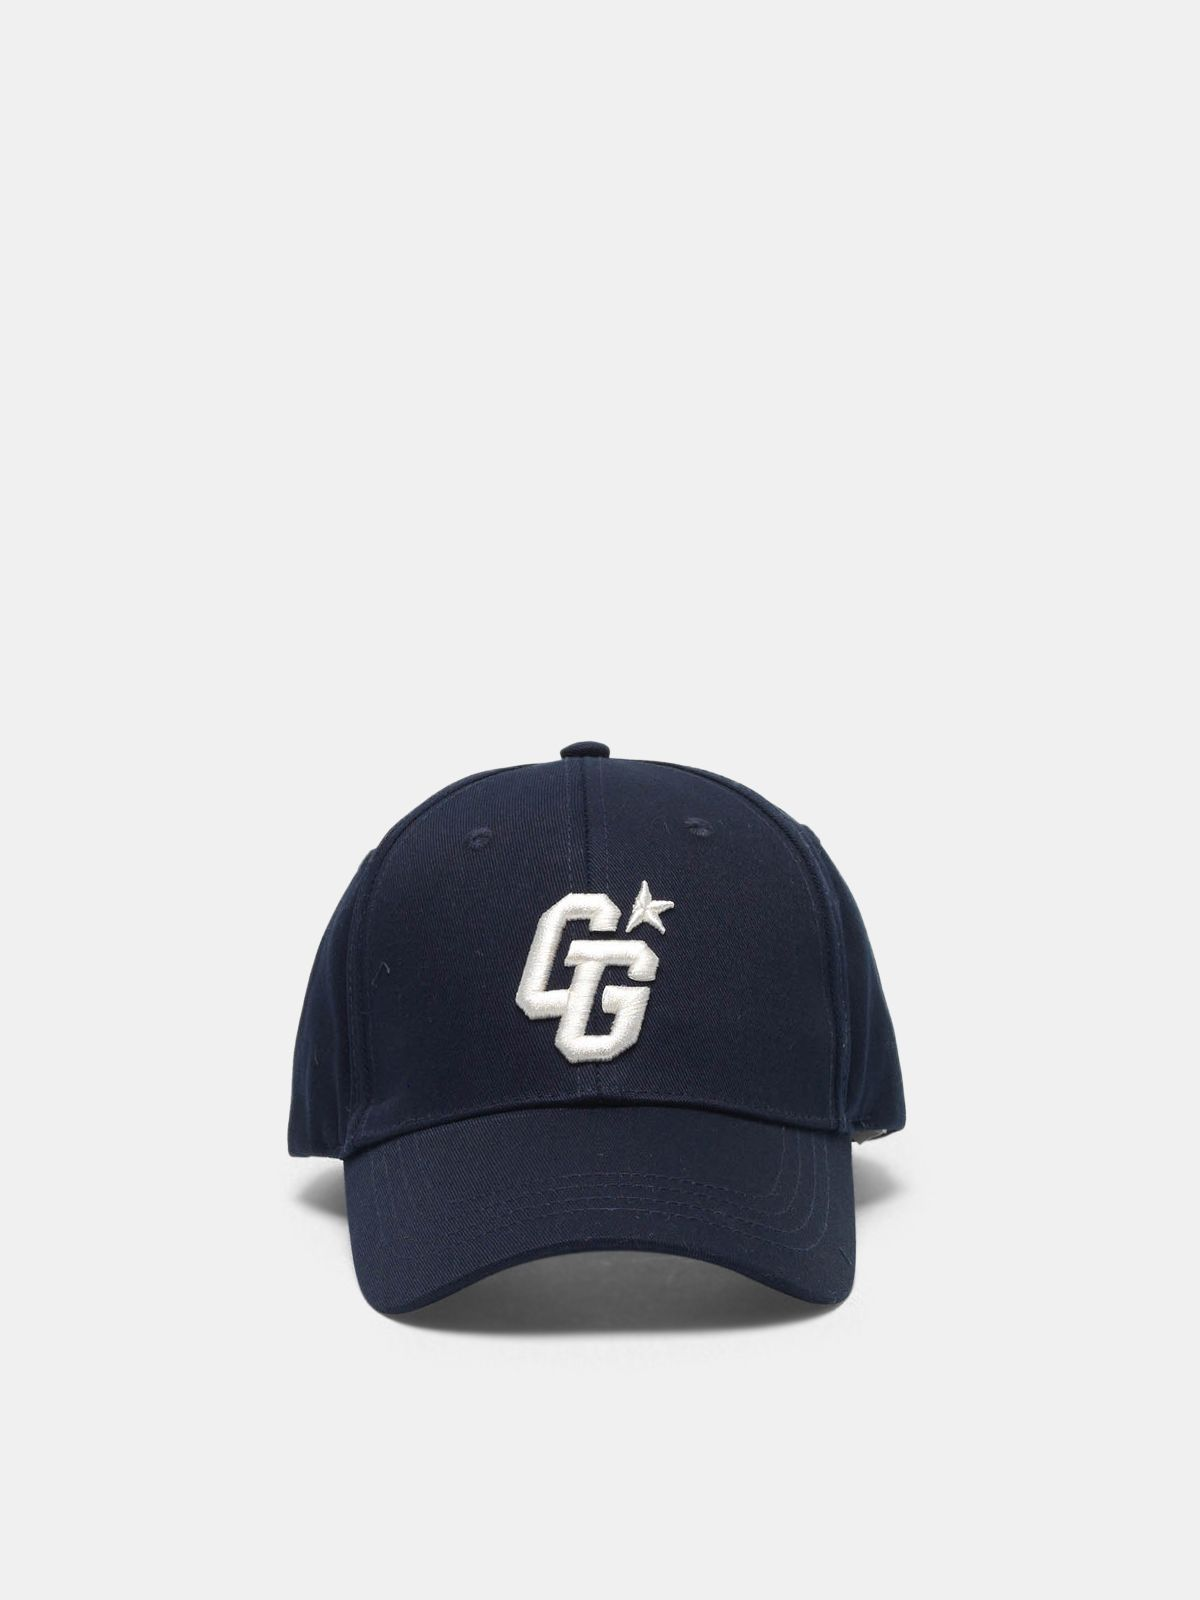 Golden Goose - Aki baseball cap with GG embroidery in